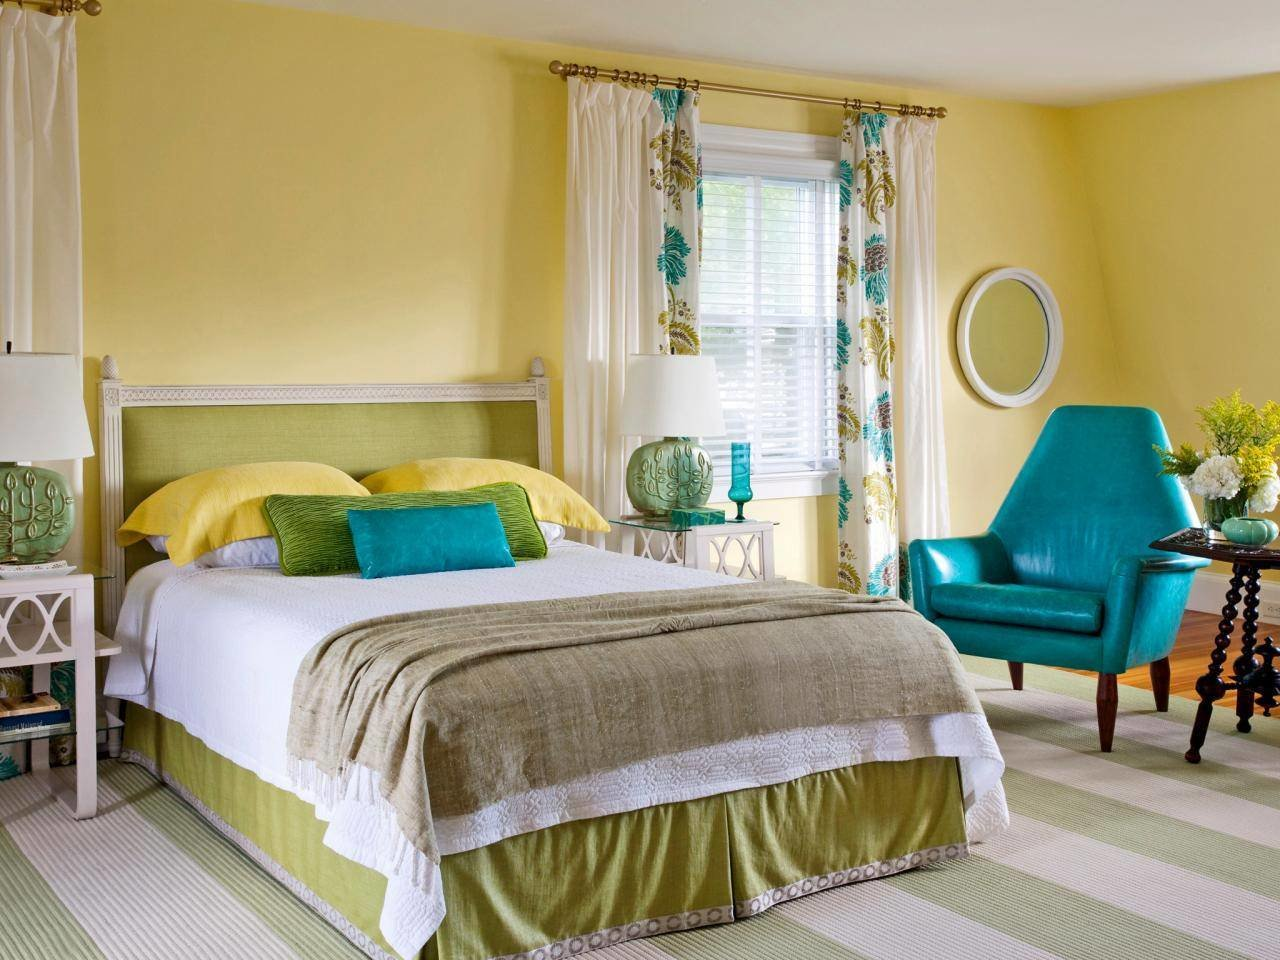 Best 7 Amazing Bedroom Colors For Real Relax Interior Design With Pictures